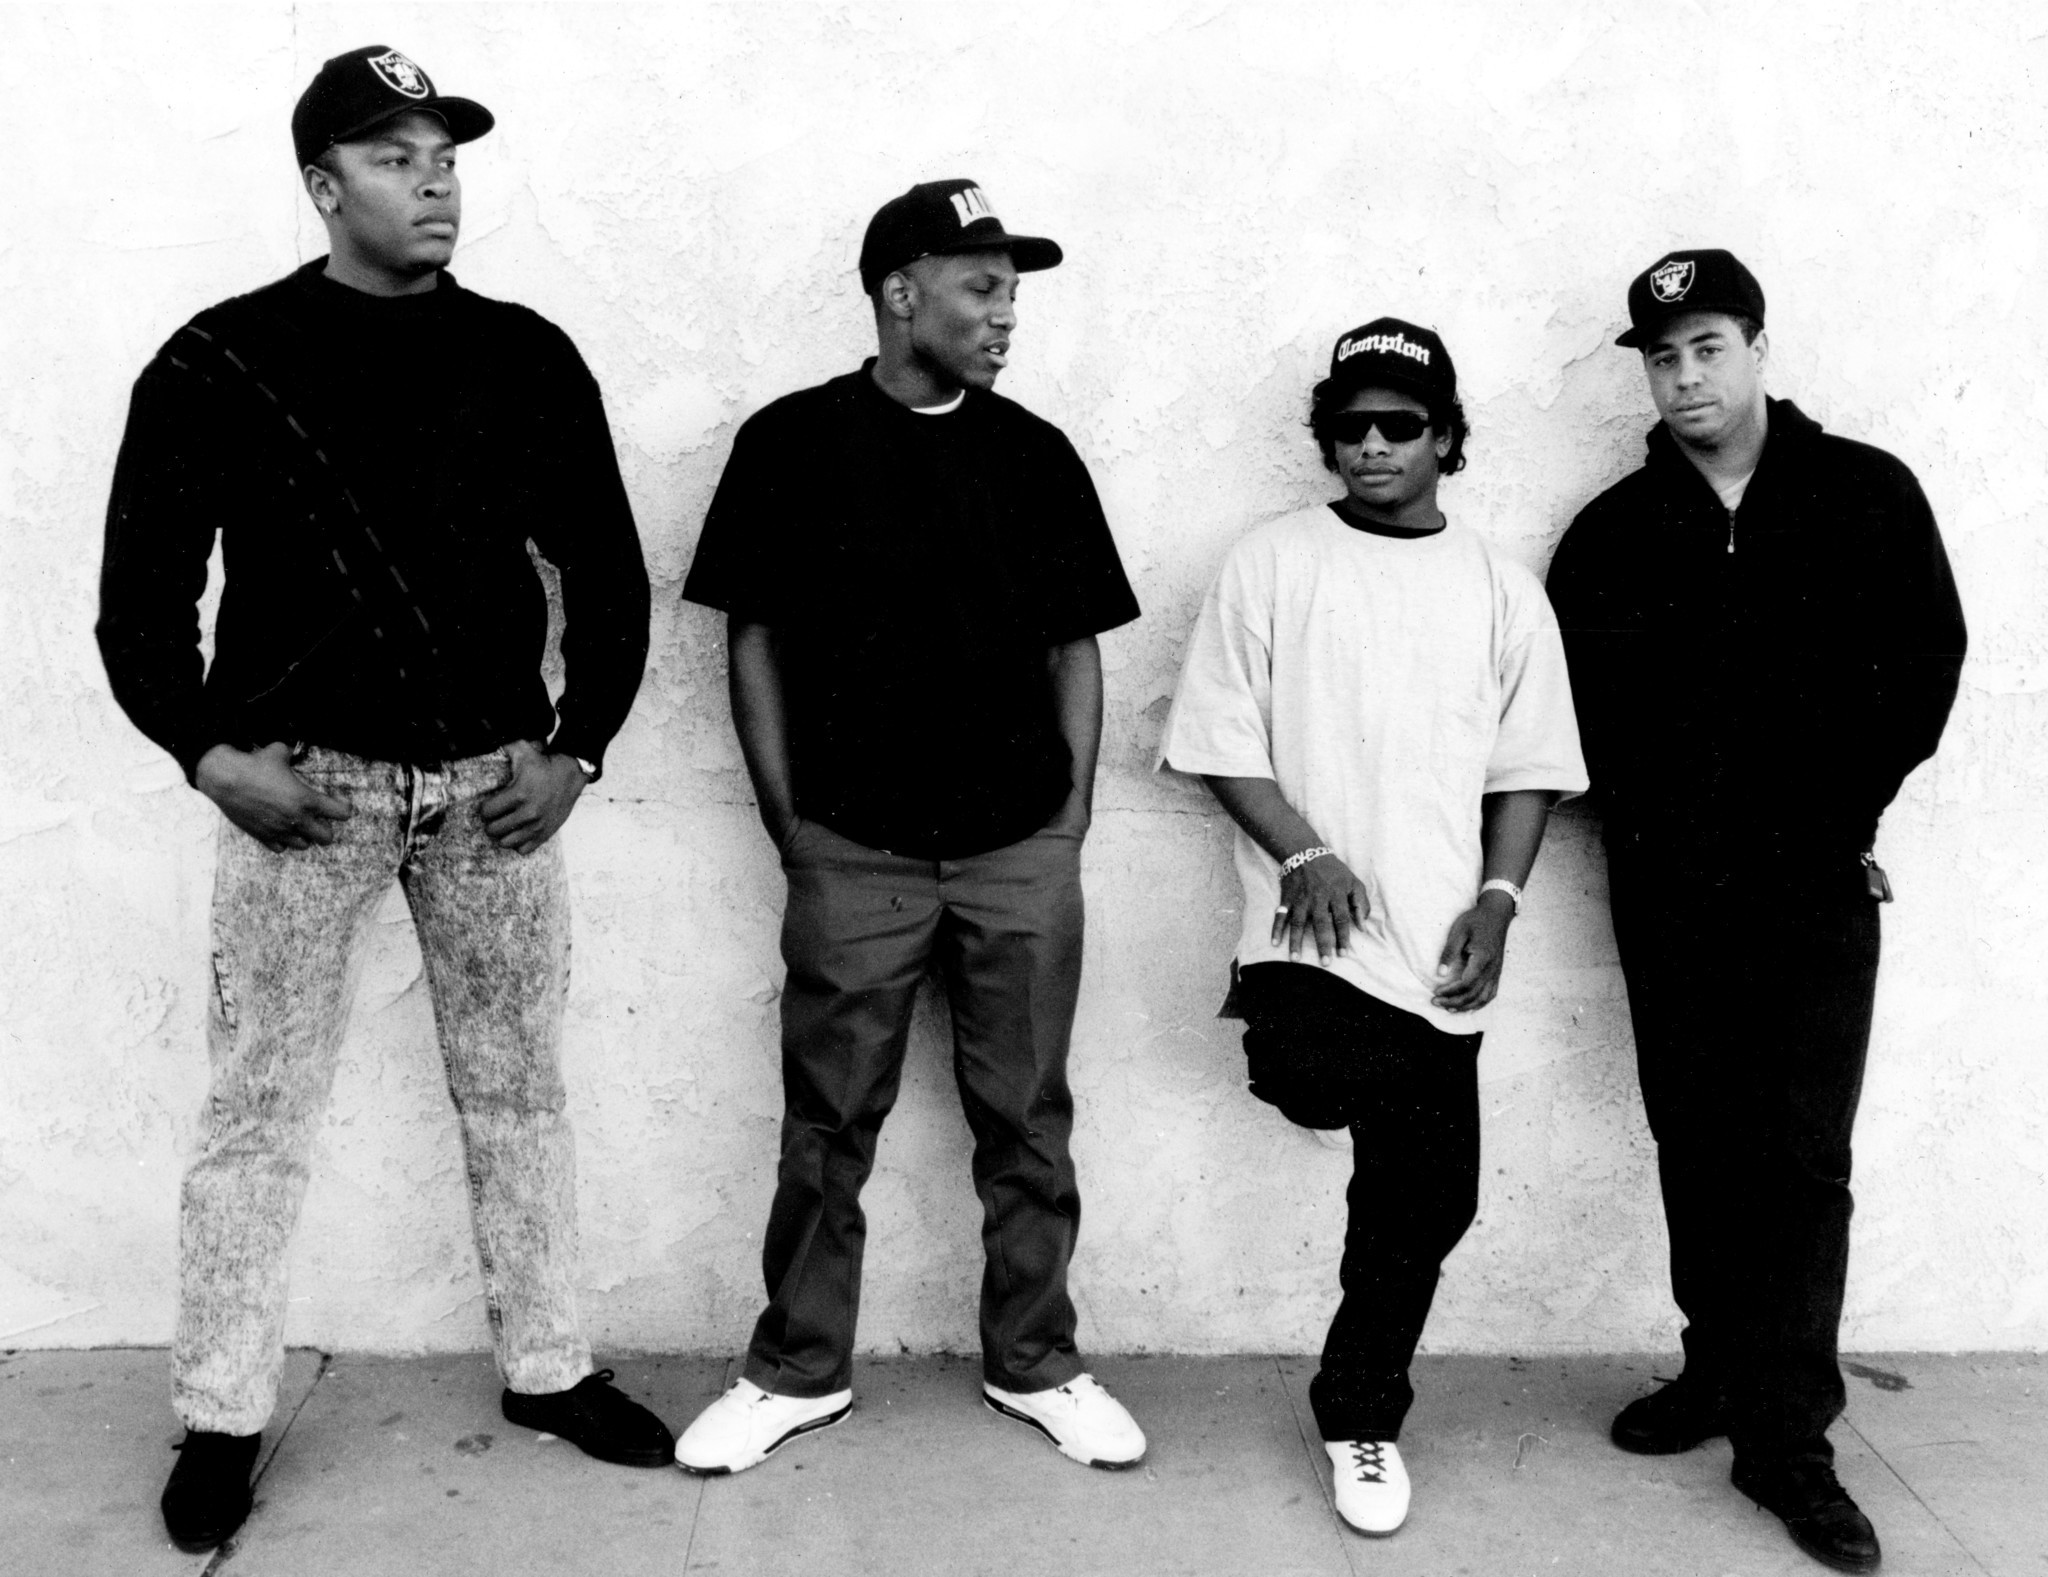 39d0d4731d1 The moment N.W.A changed the music world - Los Angeles Times